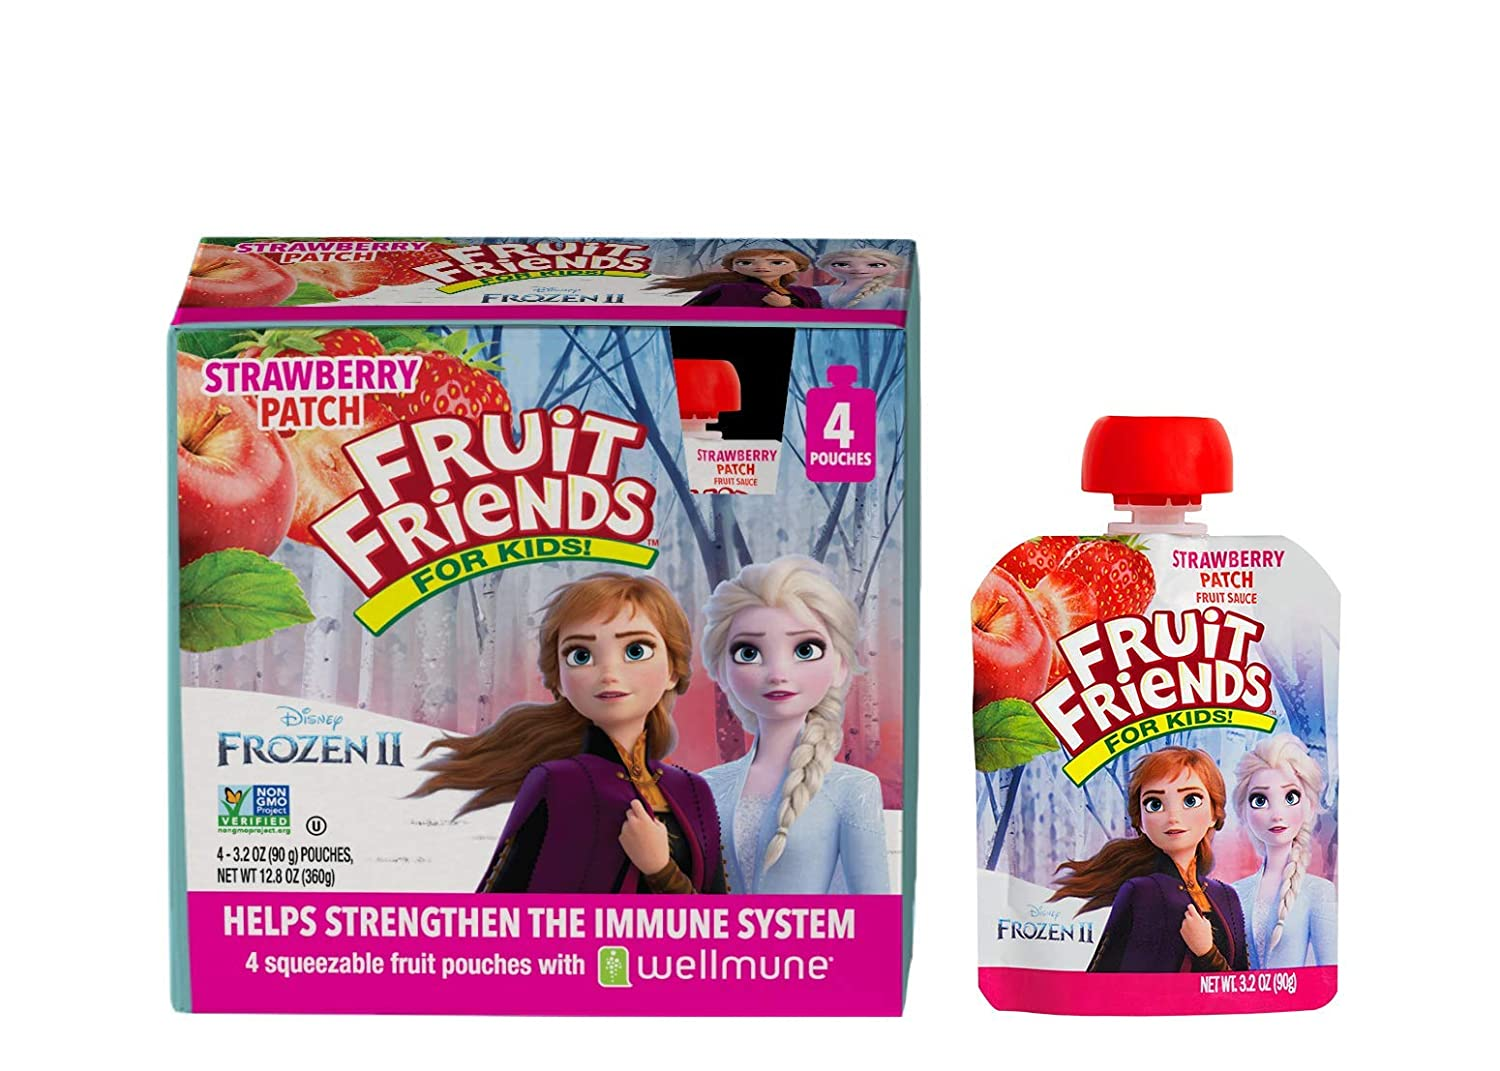 Frozen 2 Fruit Friends Strawberry Patch Applesauce With Wellmune - 3.2 Ounce (24 BPA Free Pouches) - Gluten Free - Dairy Free - Allergen Free - No Added Sweeteners